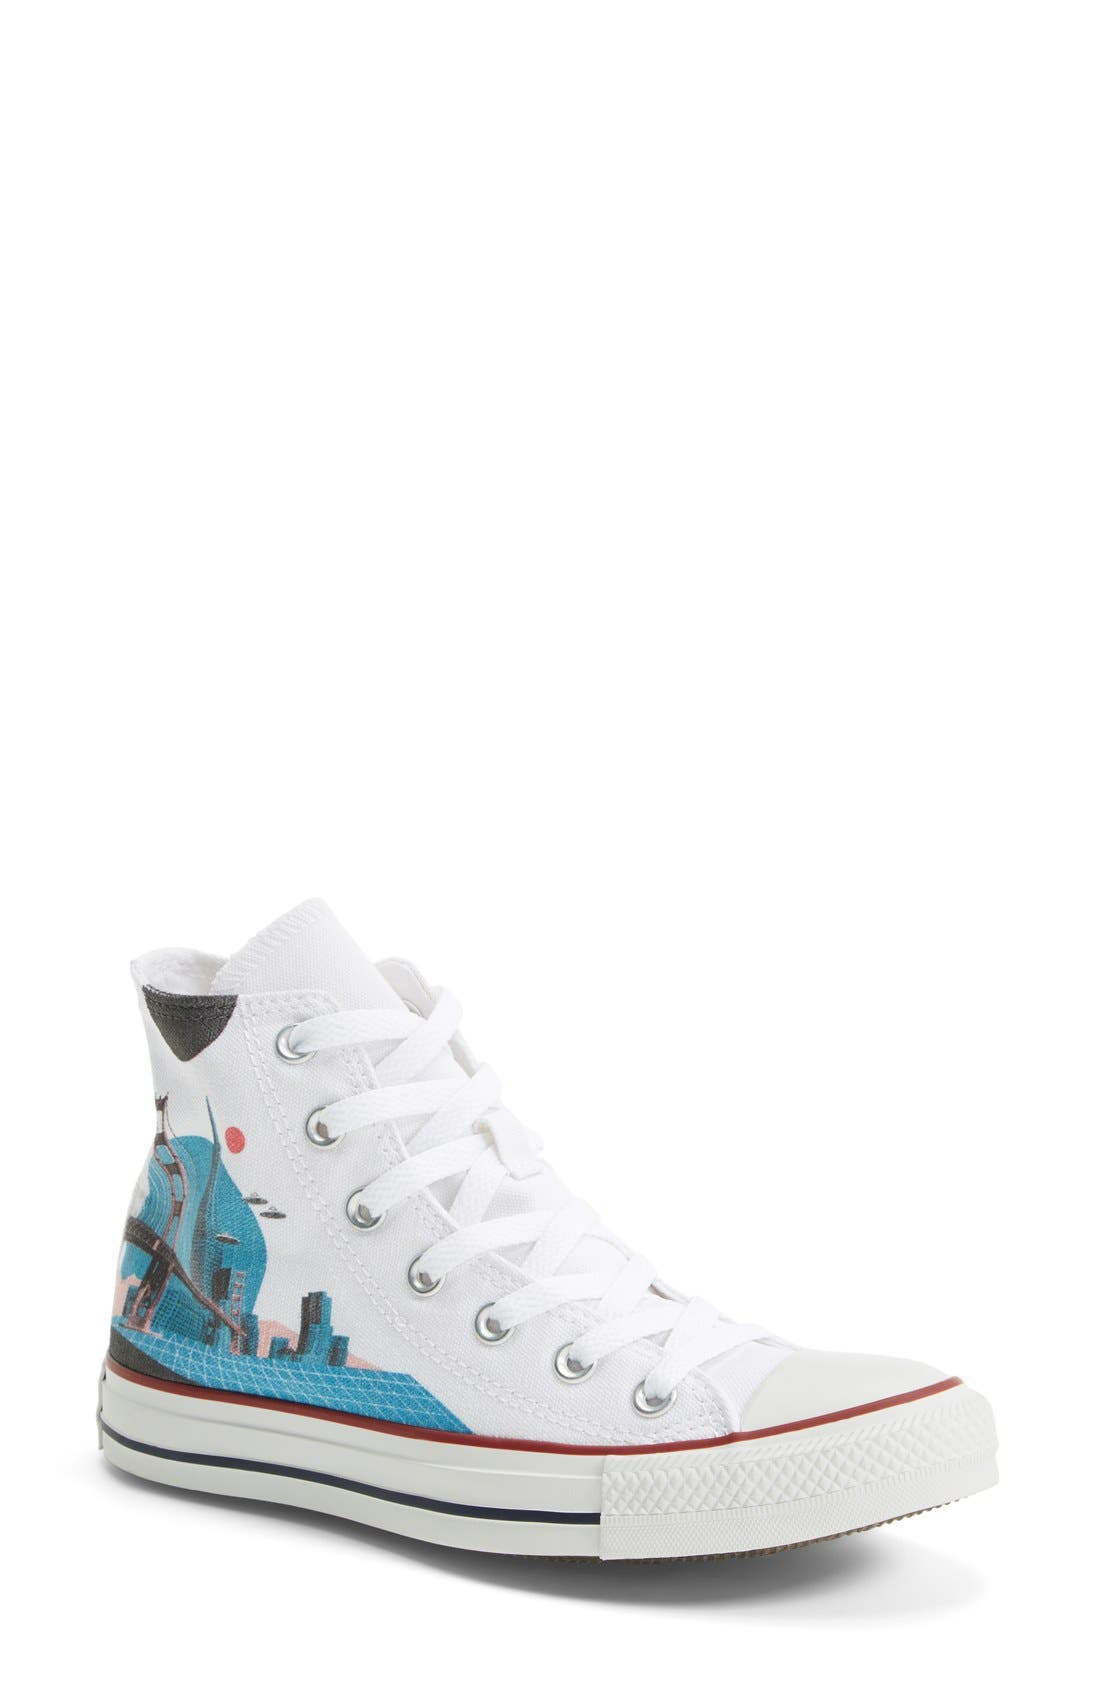 Alternate Image 1 Selected - Converse Chuck Taylor® All Star® 'Made By You - San Francisco' High Top Sneaker (Women)